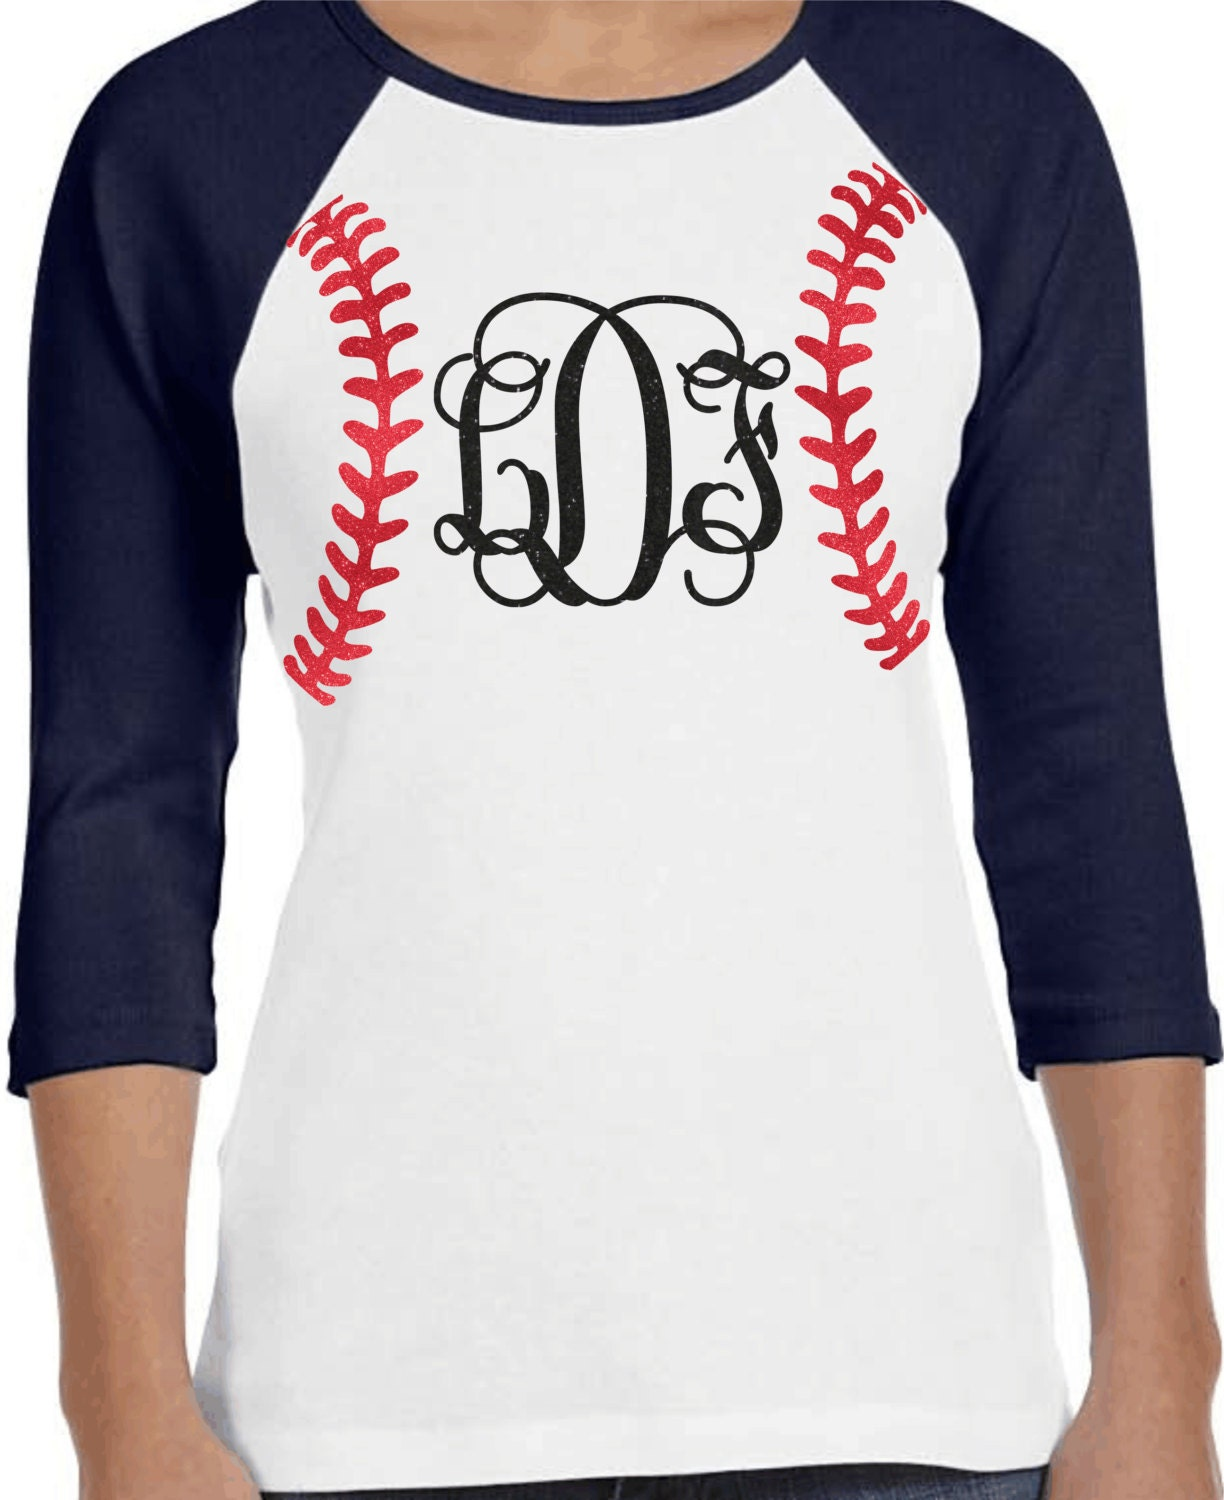 Baseball monogram raglan shirt custom baseball shirt bling Designer baseball shirts